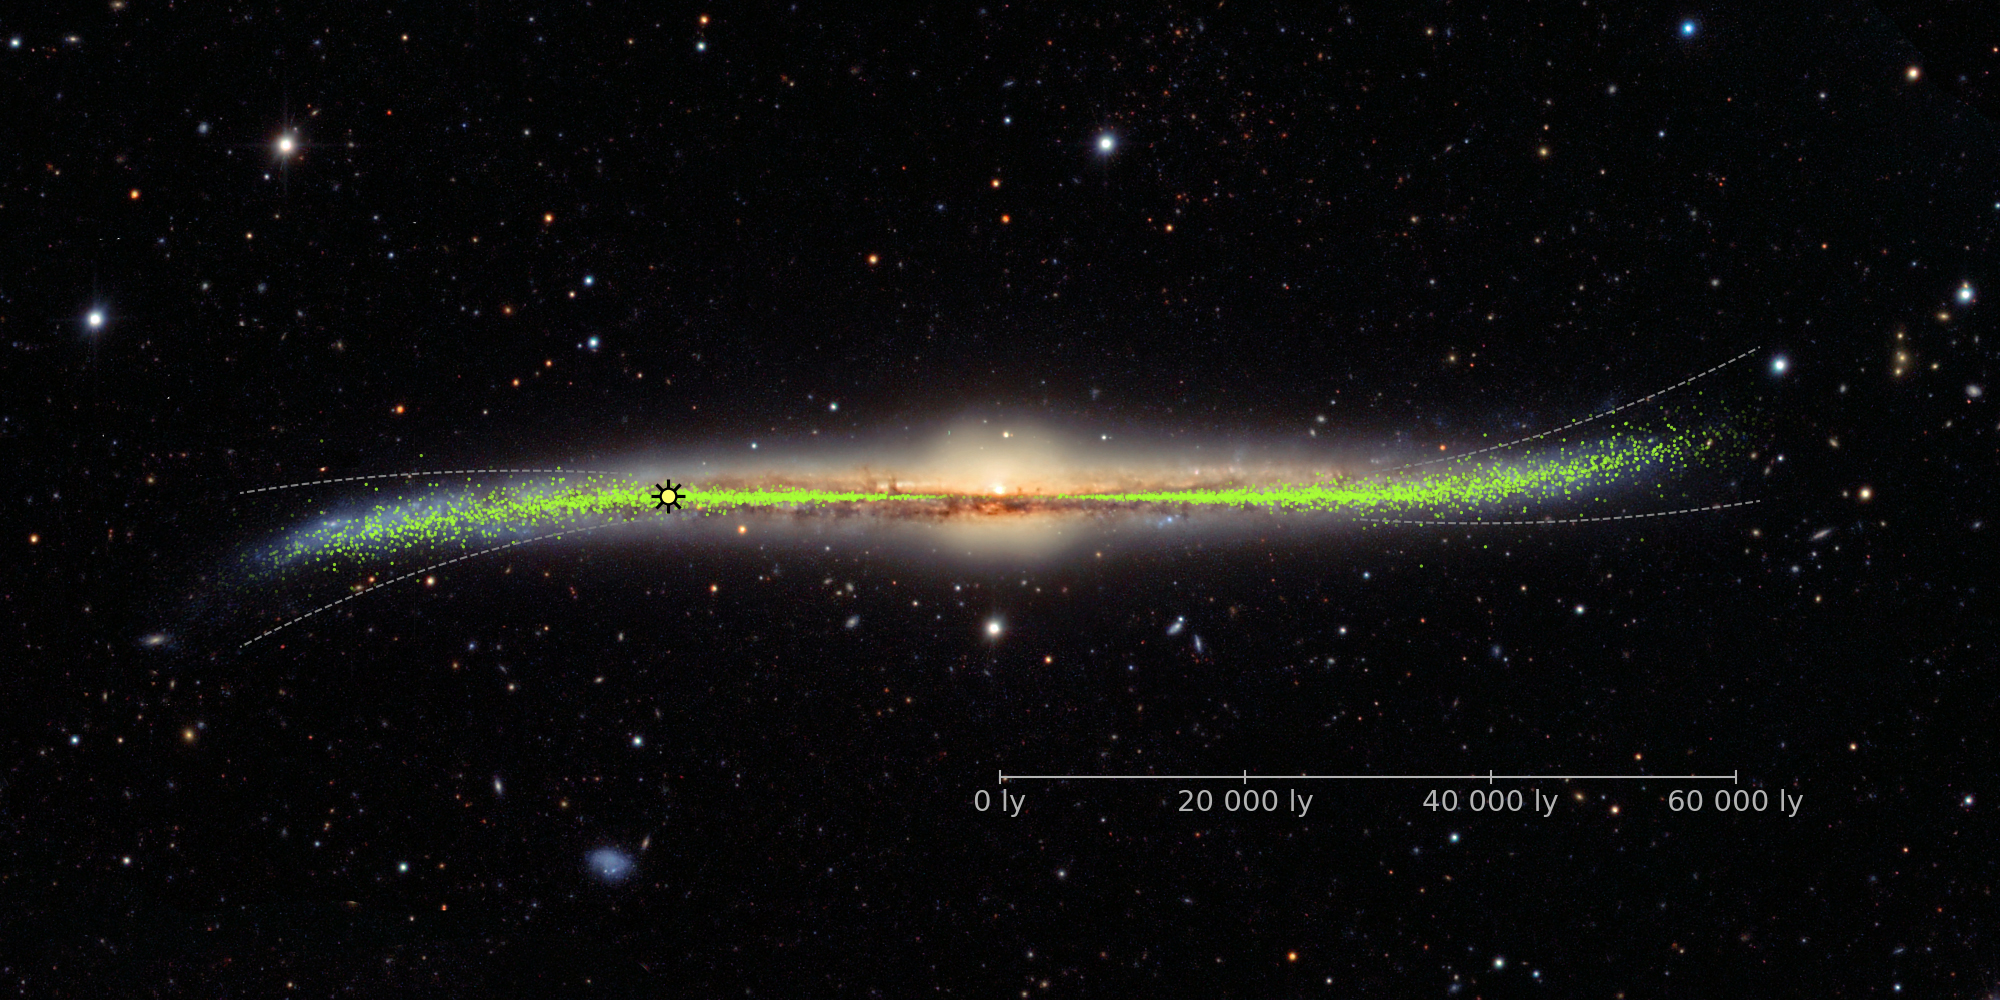 skowron4HR - The galaxy is not flat, researchers show in new 3D model of the Milky Way